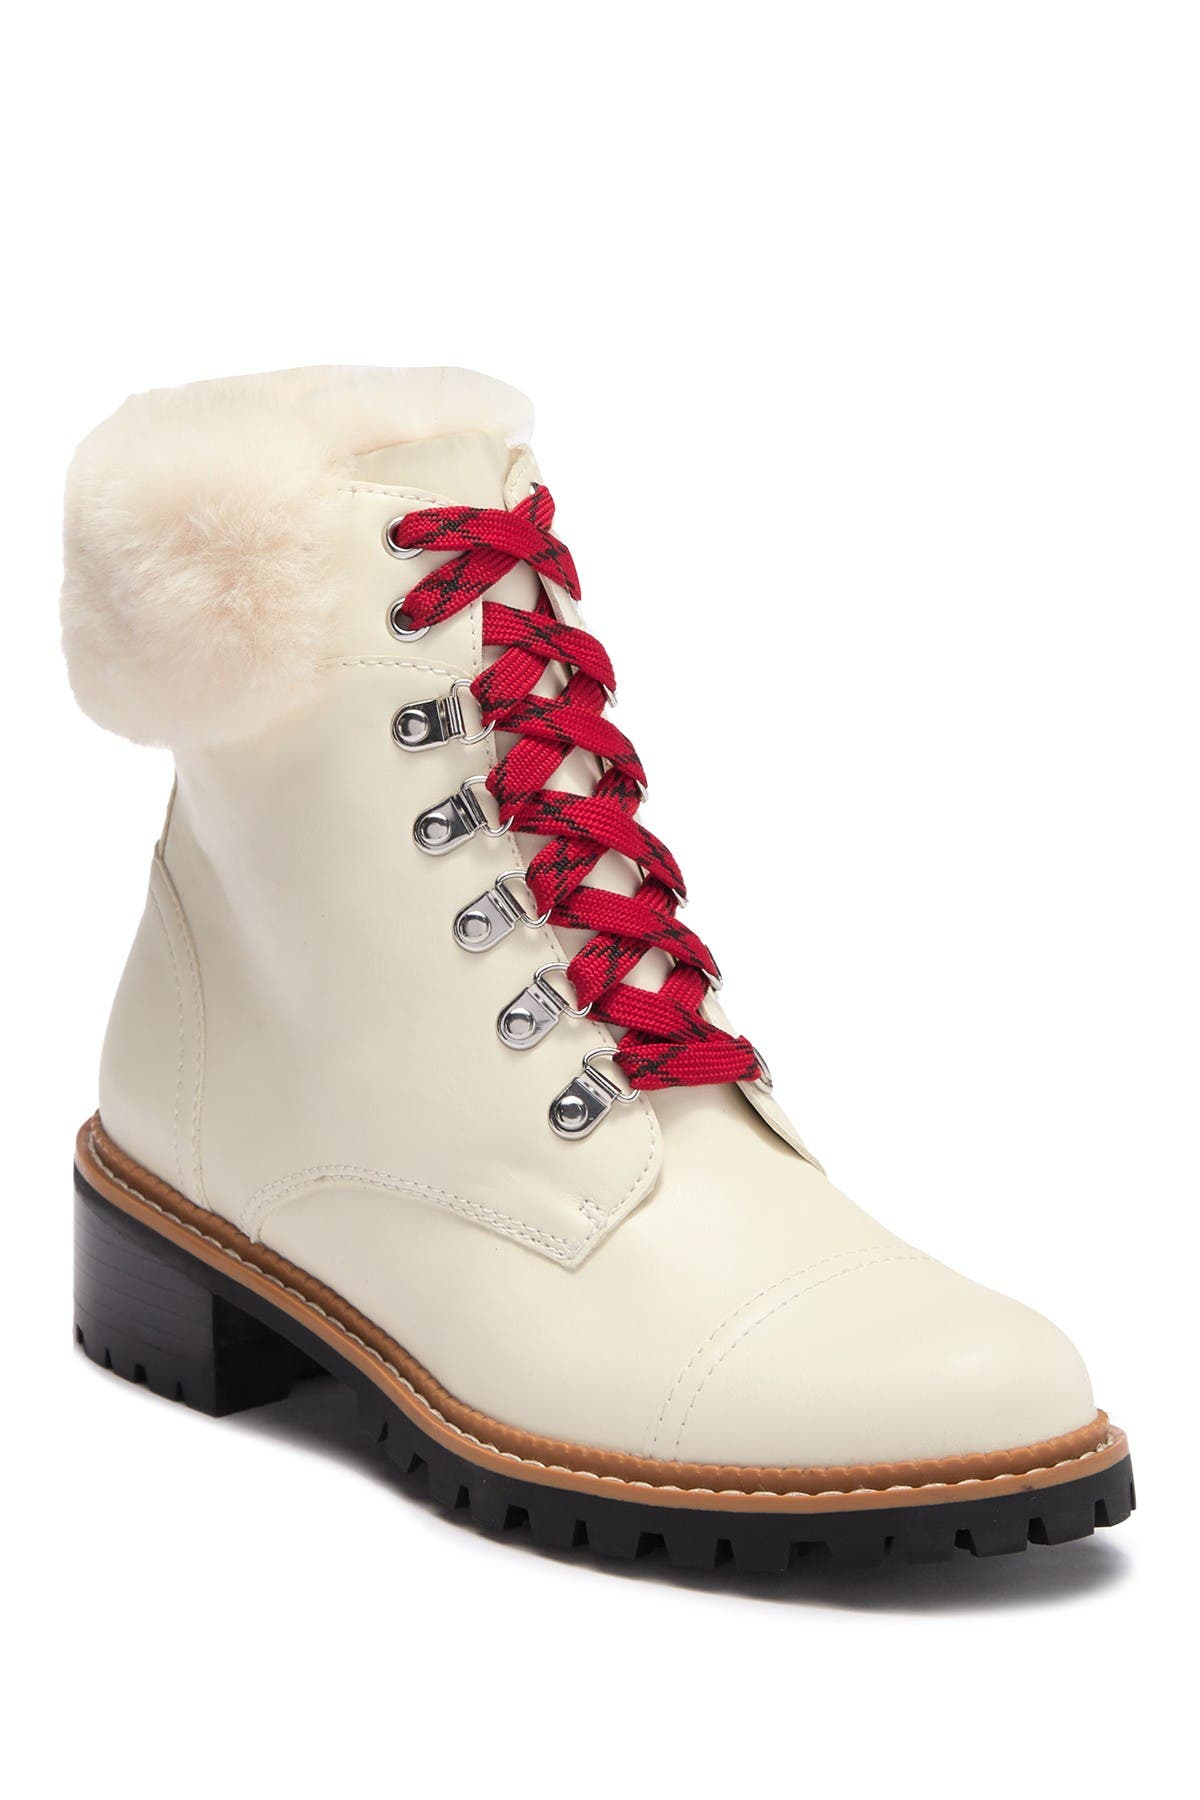 Image of Abound Georgie Faux Fur Lined Hiker Boot